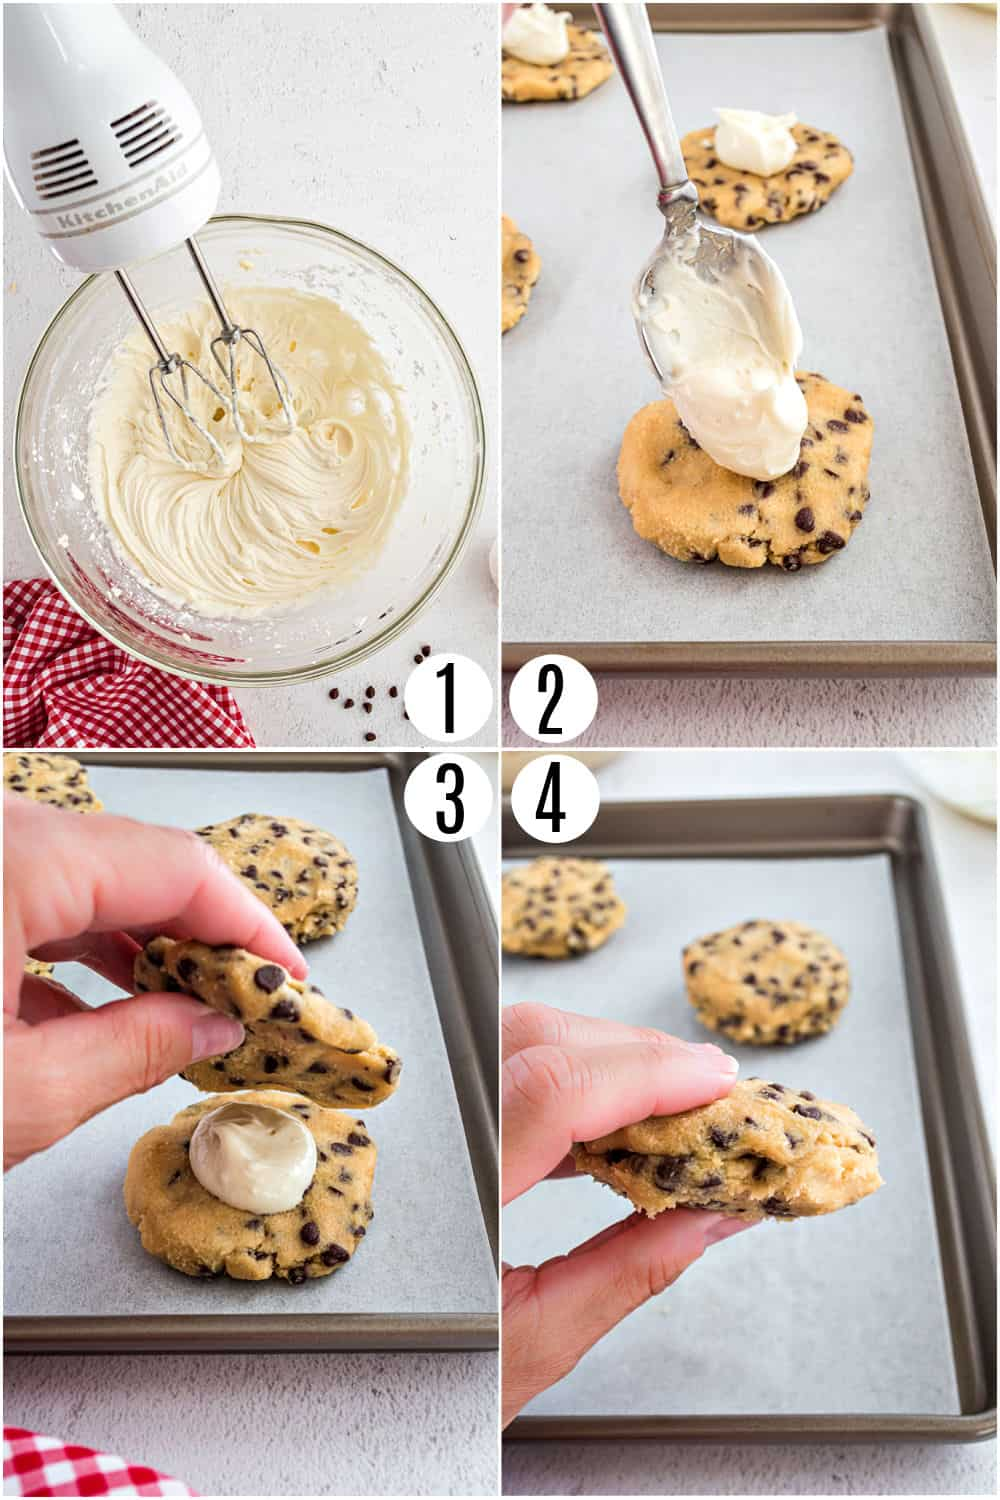 Step by step photos showing how to add cheesecake filling to cookies.